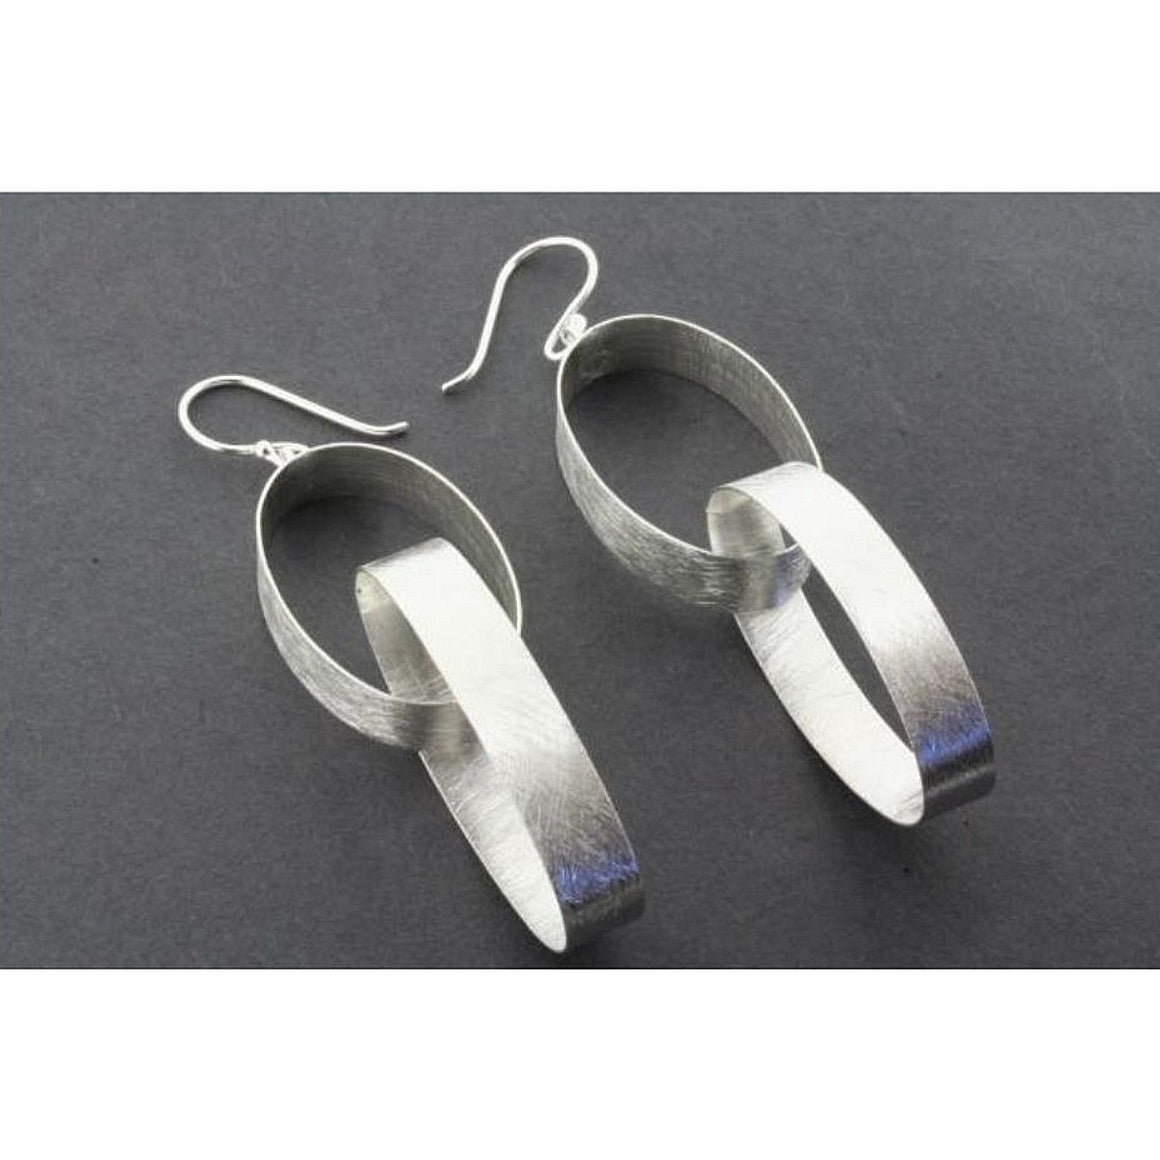 A pair sterling silver two hooped drop earrings sitting on top of a grey background